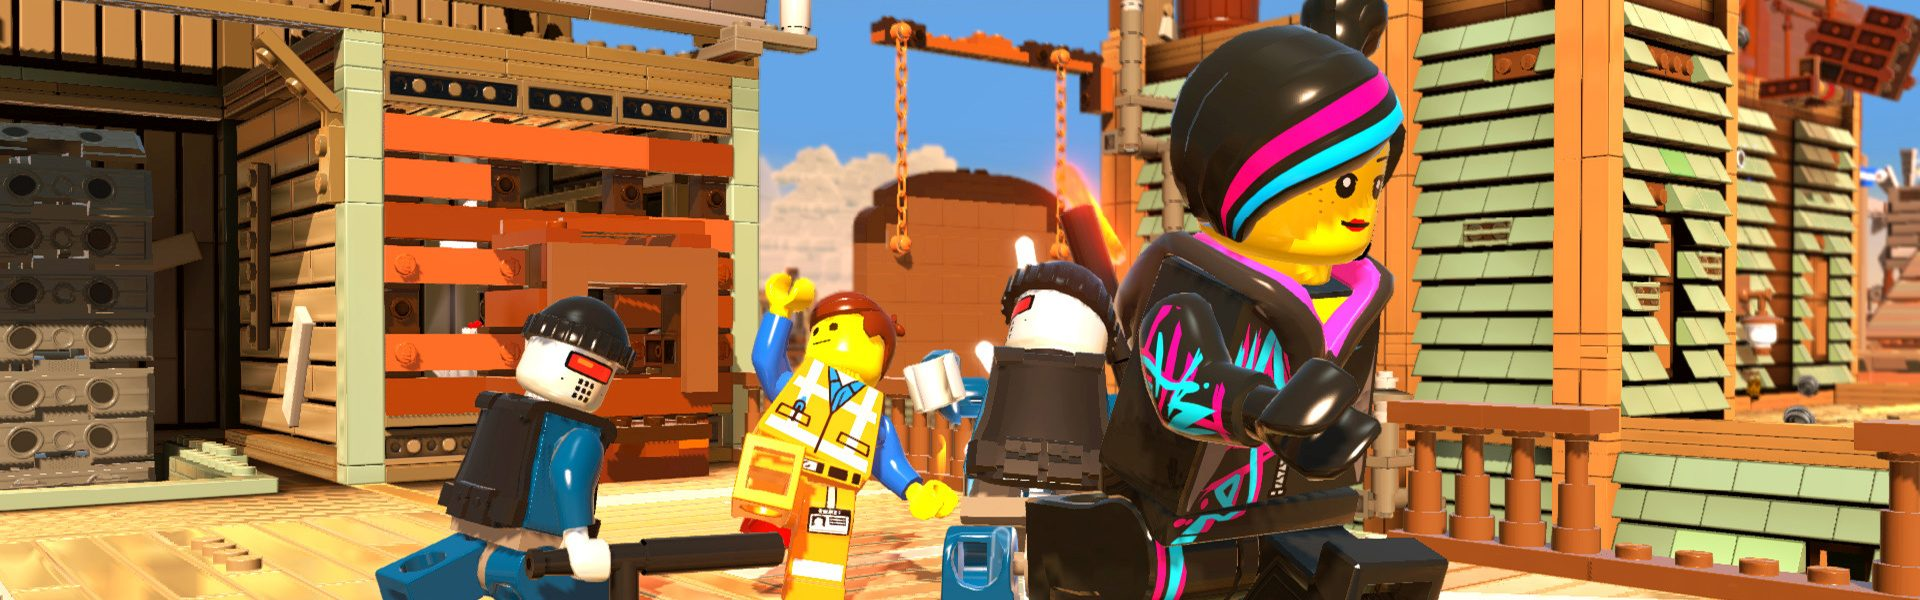 The LEGO Movie - Videogame DLC - Wild West Pack Steam Key GLOBAL